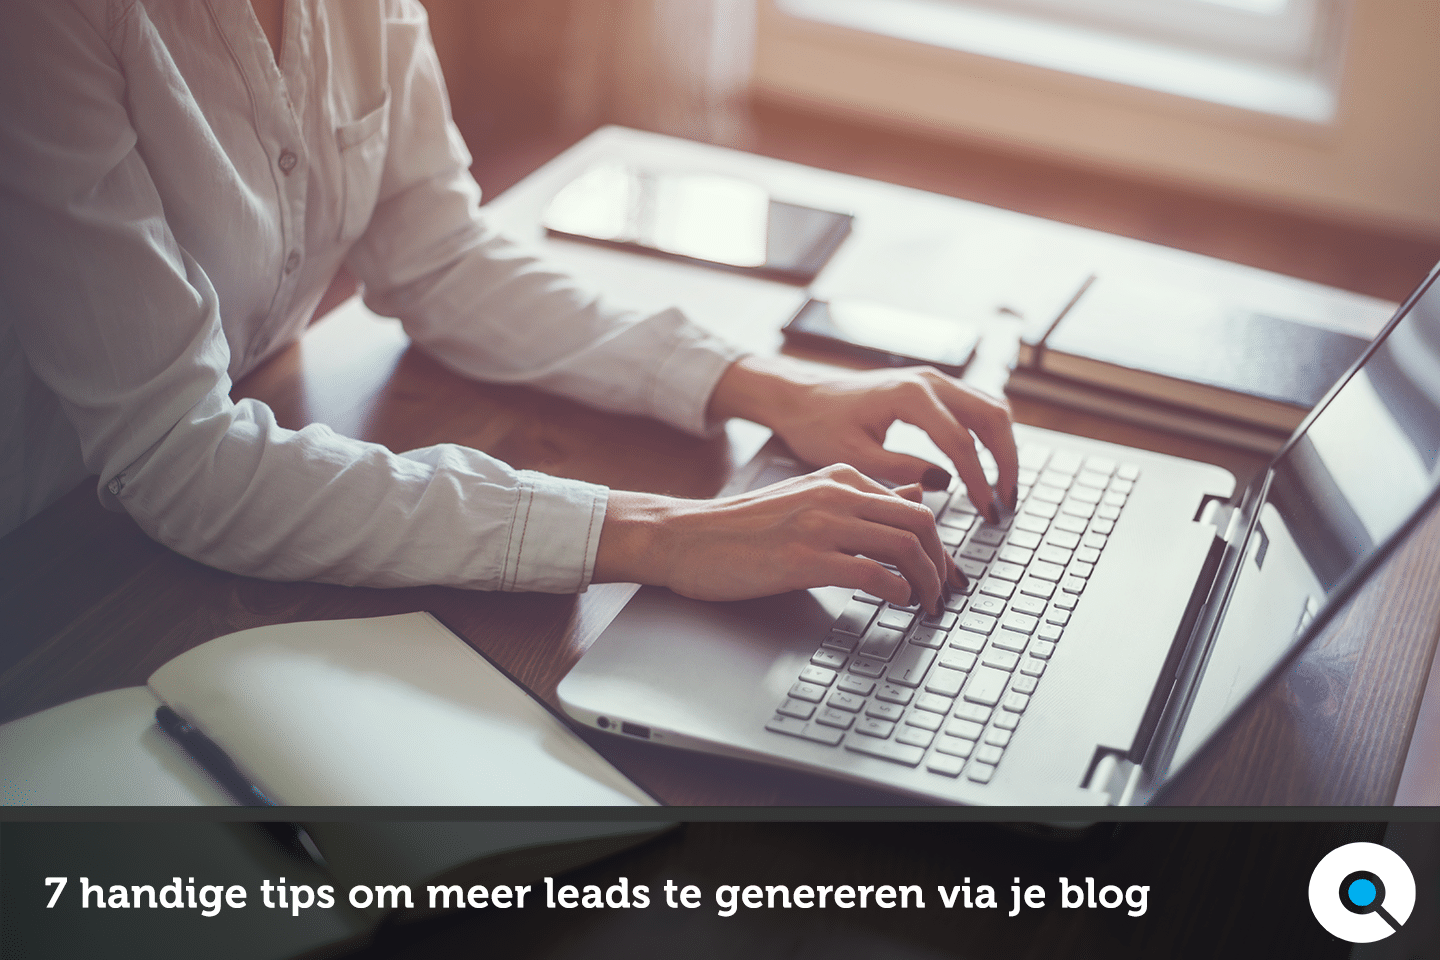 7 handige tips om meer leads te genereren via je blog